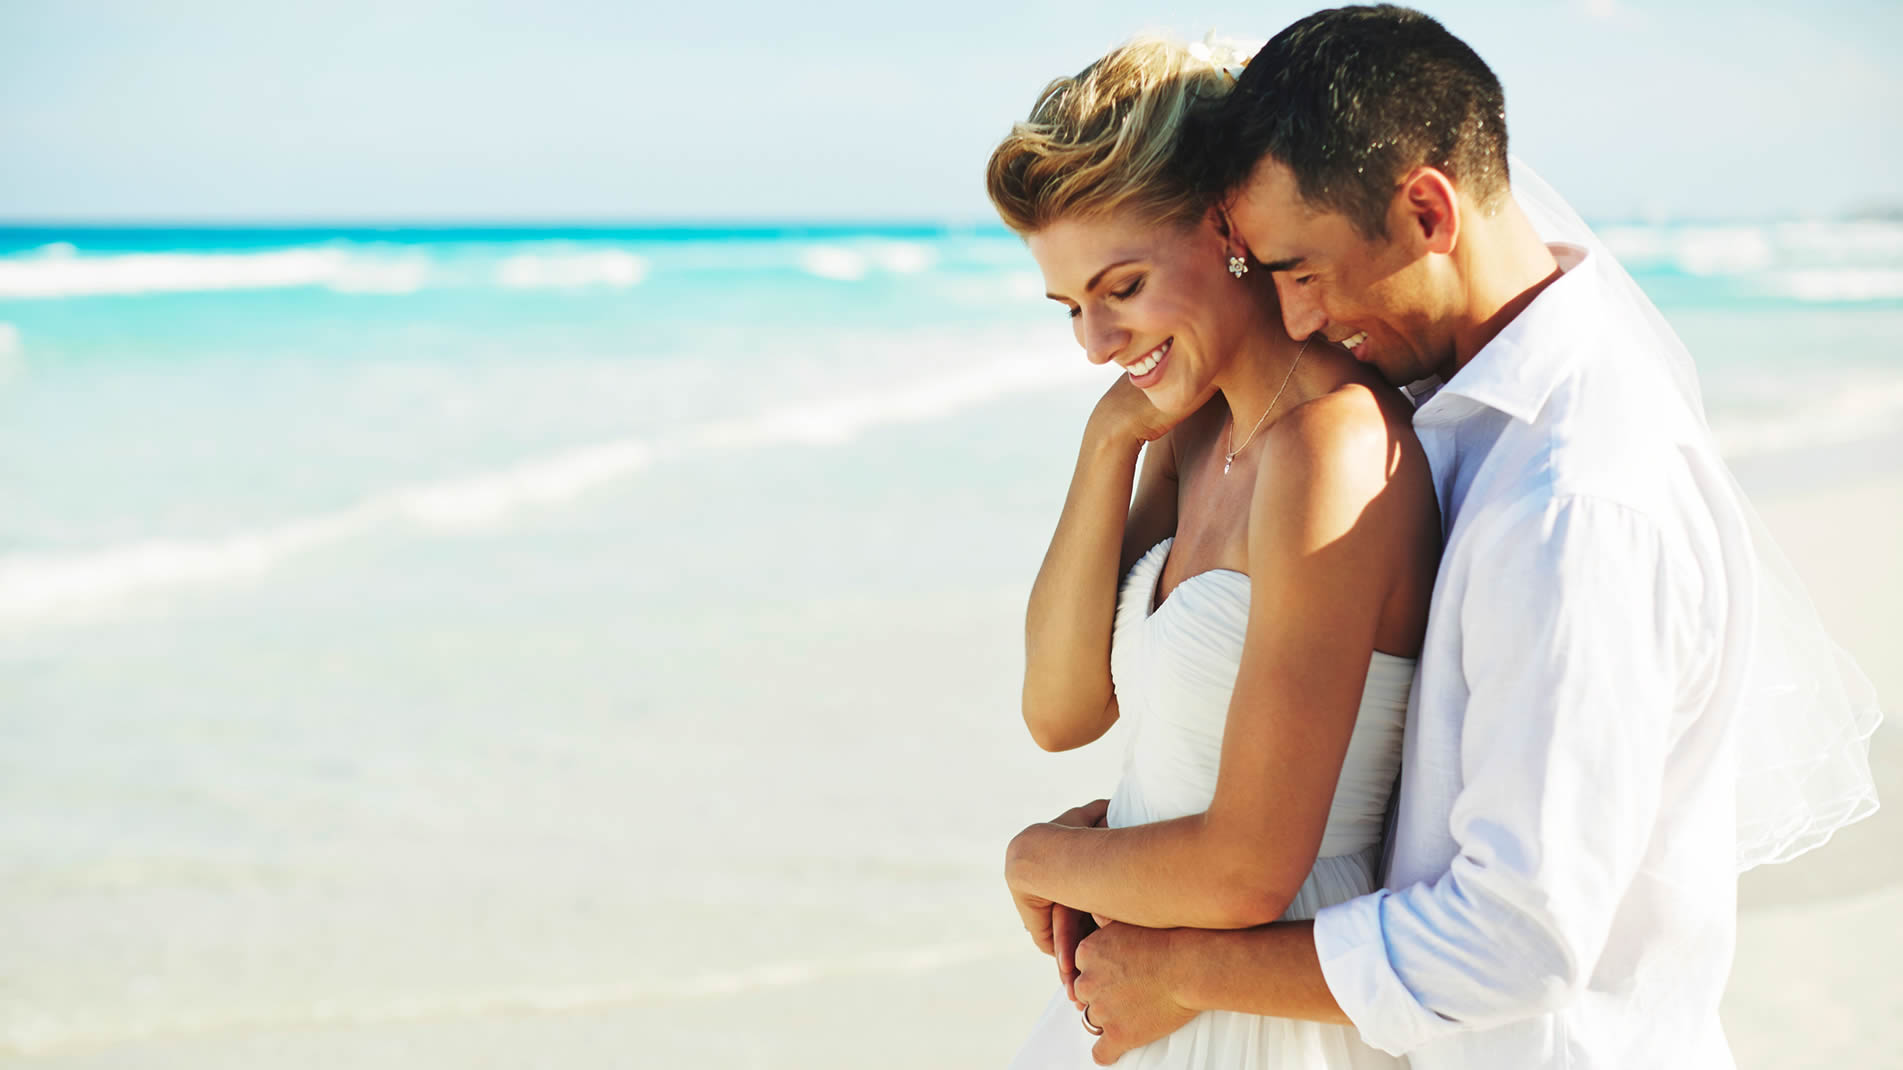 Playa wedding packages were created to exceed the expectations of your dream wedding select from 5 stunning beach wedding packages.